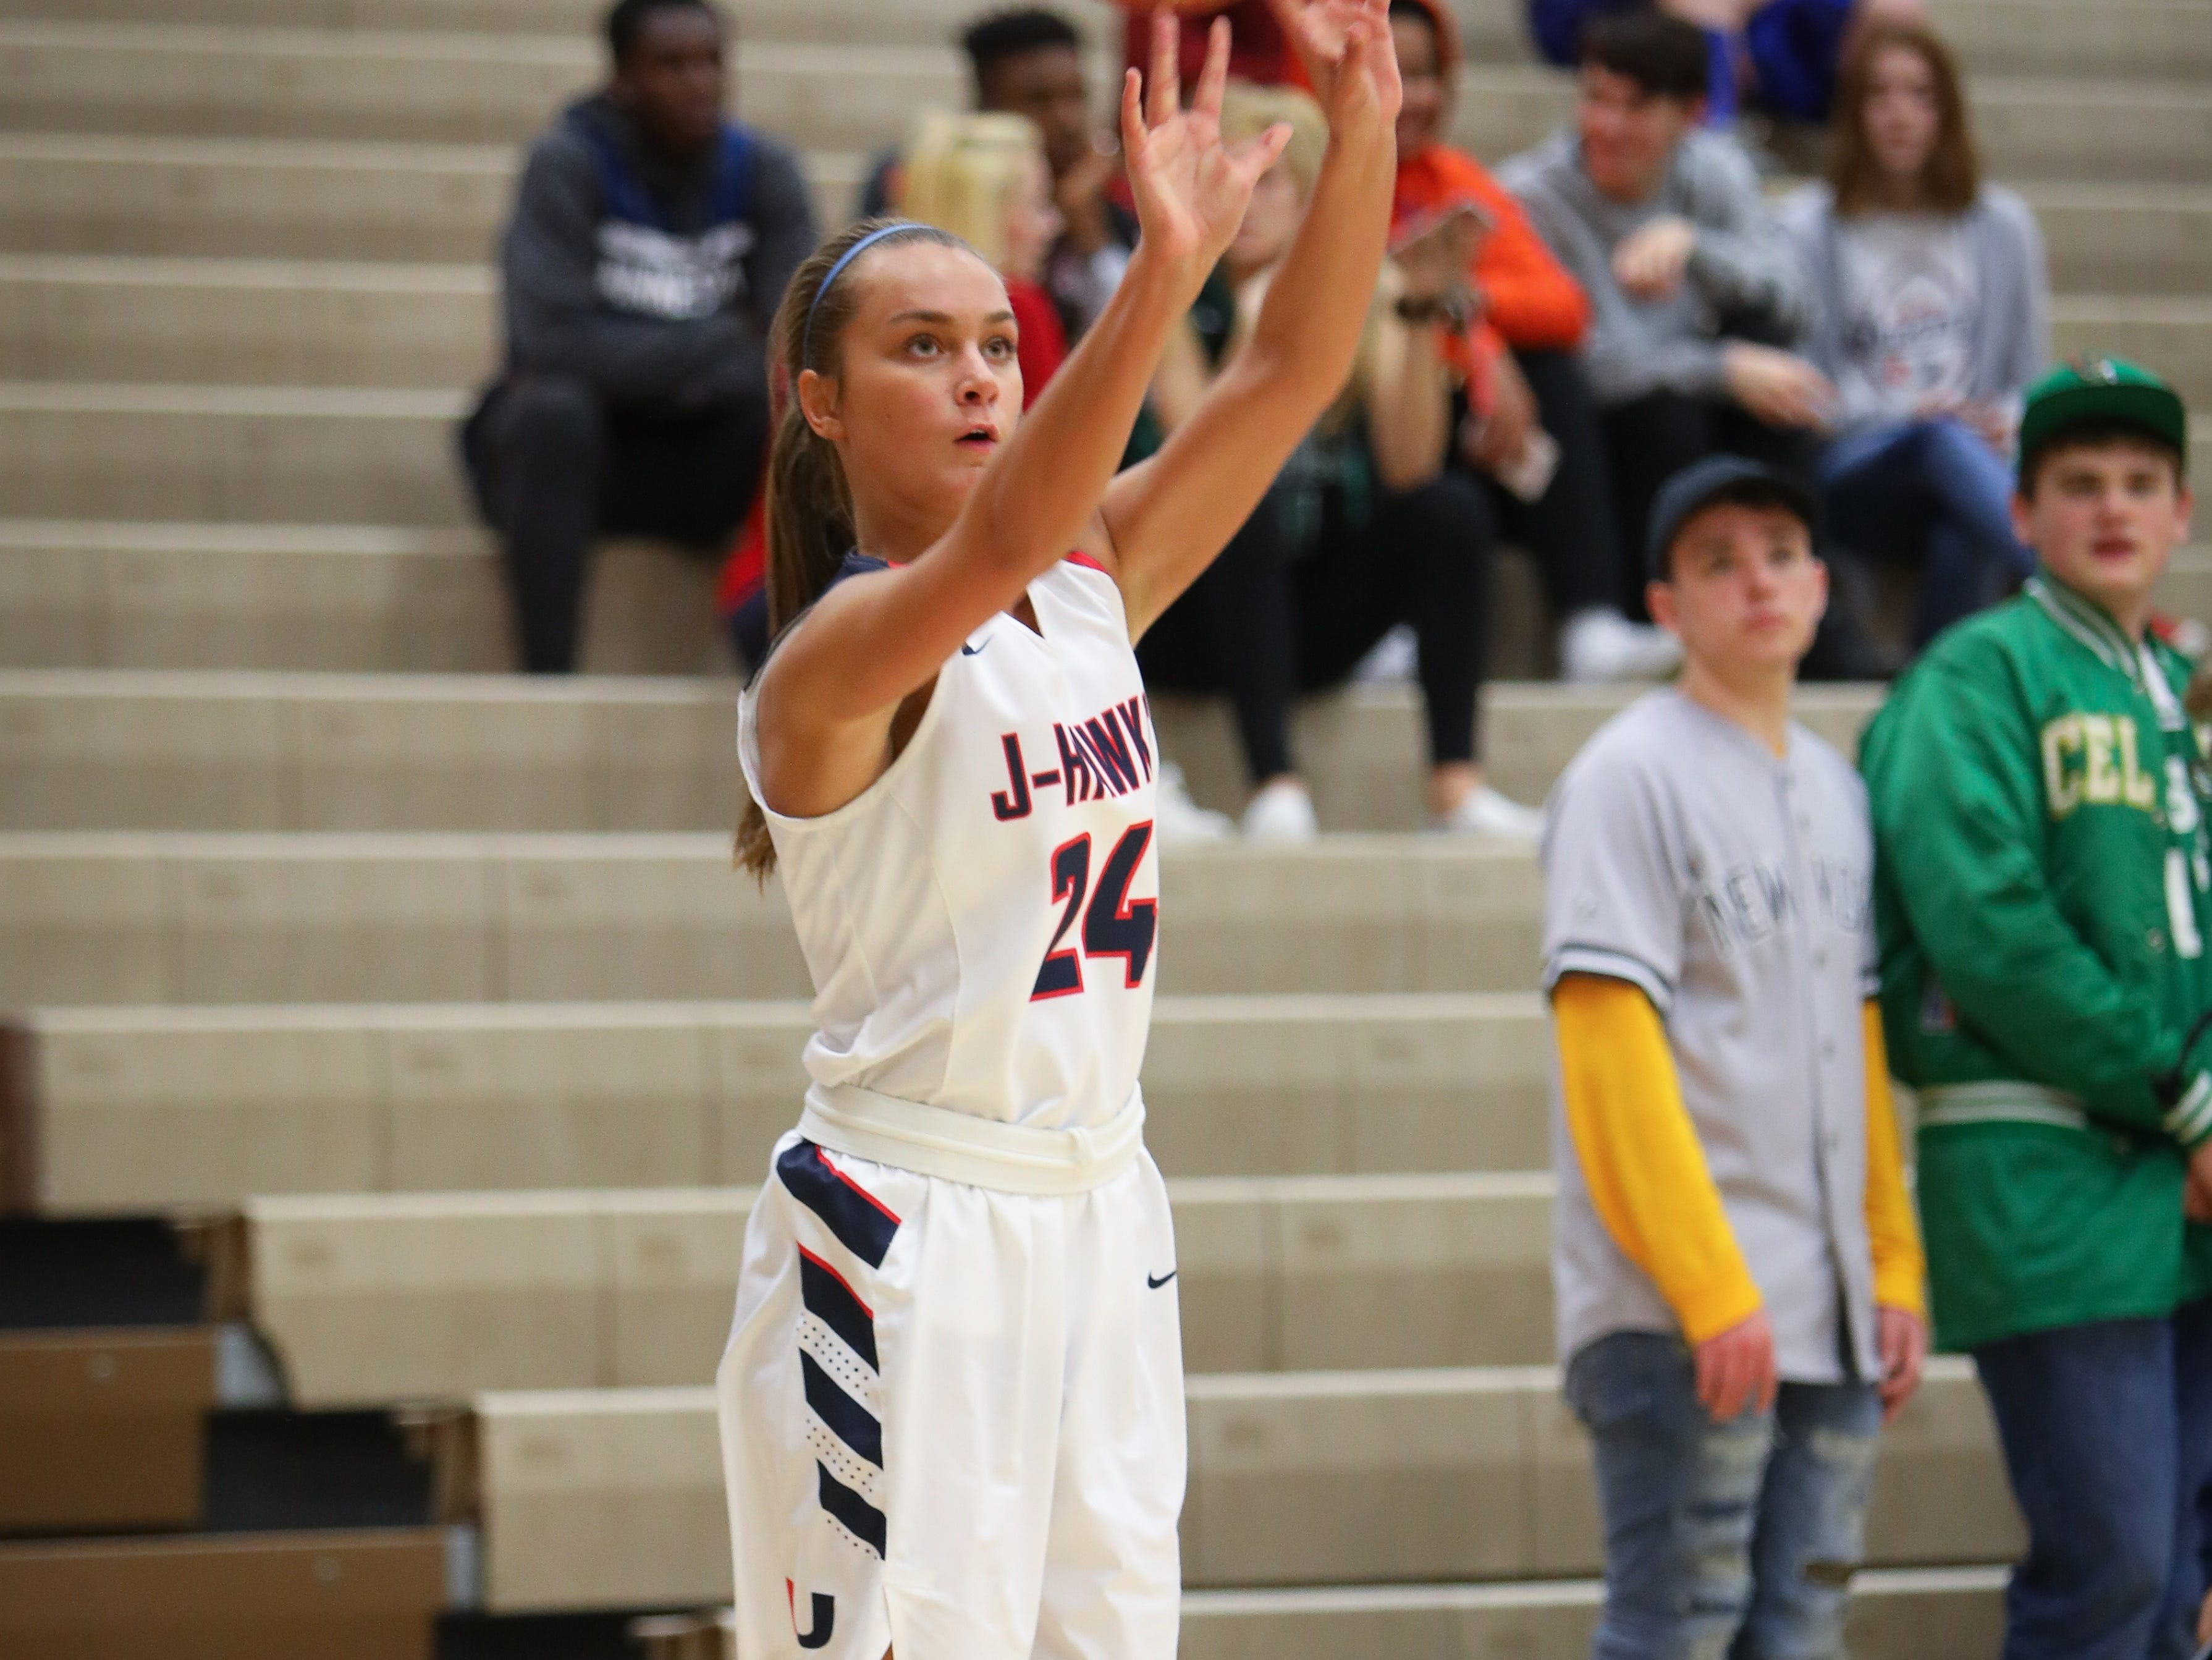 Urbandale sophomore Madi Lynch attempts a three-pointer during a girls high school basketball game between the Johnston Dragons and the Urbandale J-Hawks at Urbandale High School on Dec. 18, 2018 in Urbandale, Iowa.